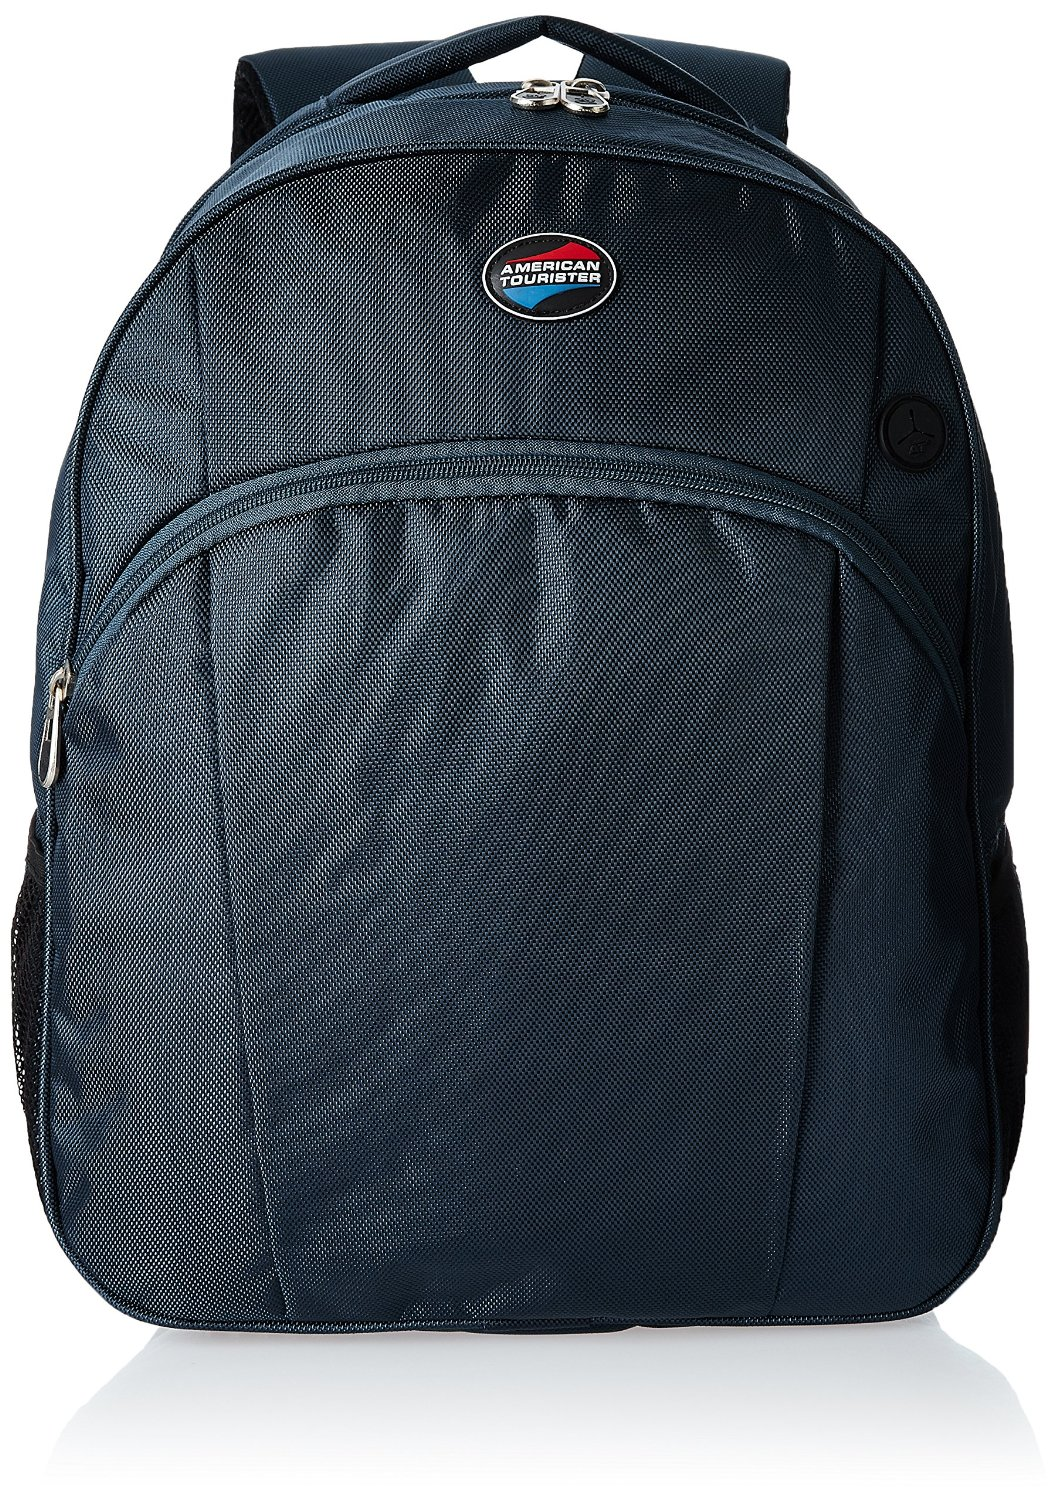 American Tourister Clive Polyester 20.8 ltrs Blue Laptop Bag (61W (0) 01 206) for Rs 1444 (52% off)